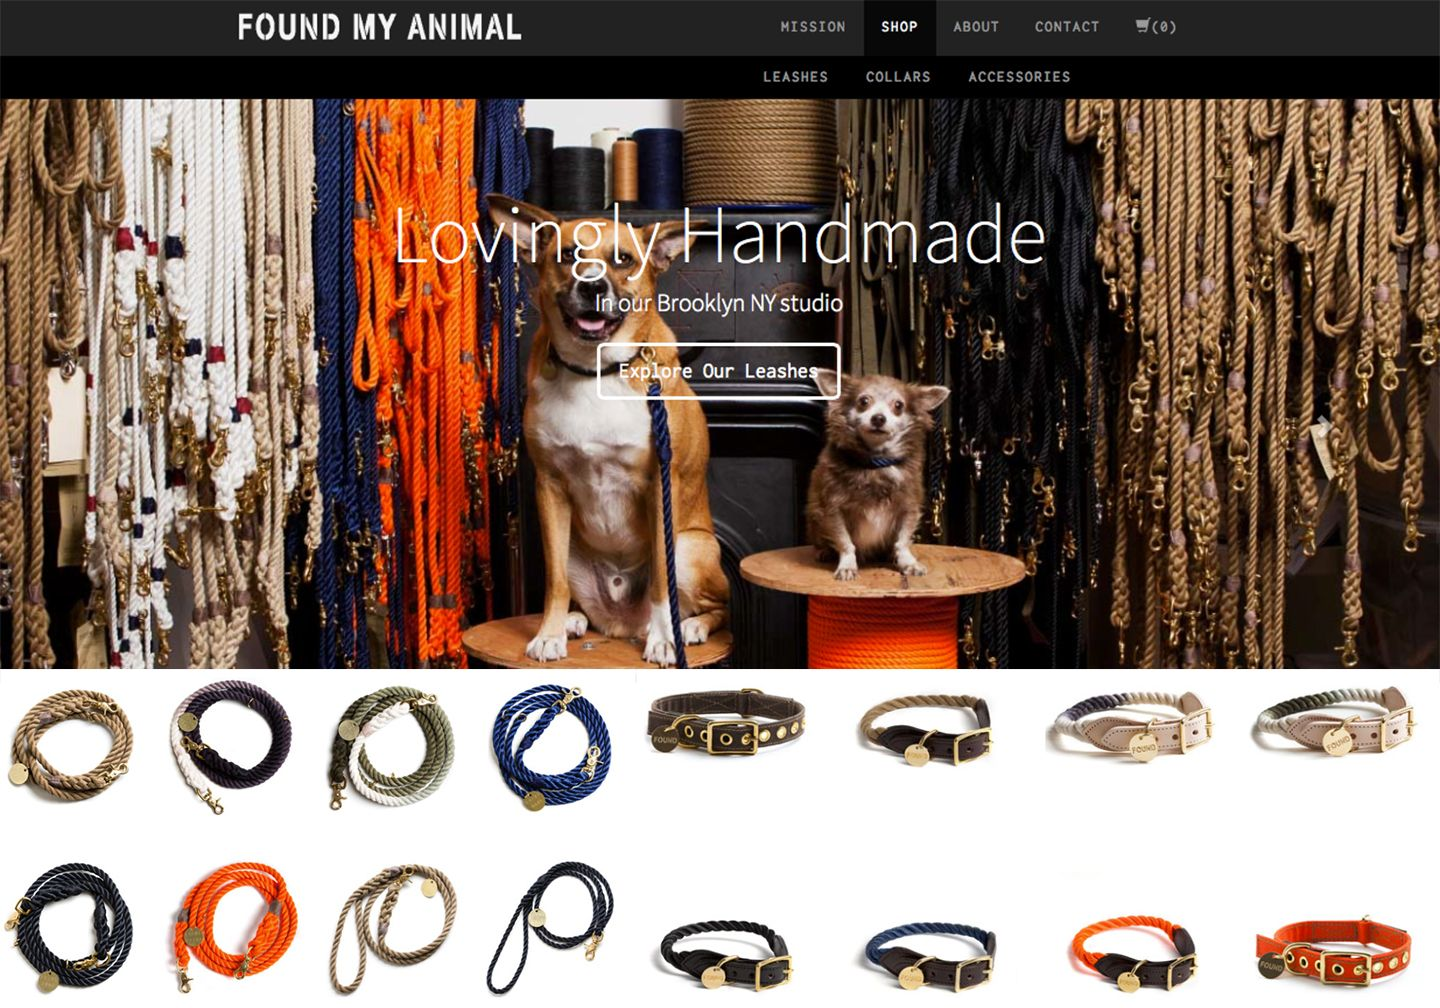 Puppy fashion is taking over the blog today. Check out my favorite fashionable collar & leash picks for stylish dogs, including #FoundMyAnimal, #RESQCO, #FreePeople & more!  http://magdalenawojcik.com/blog/puppy-chic-collar-leash-option-for-stylish-puppies/